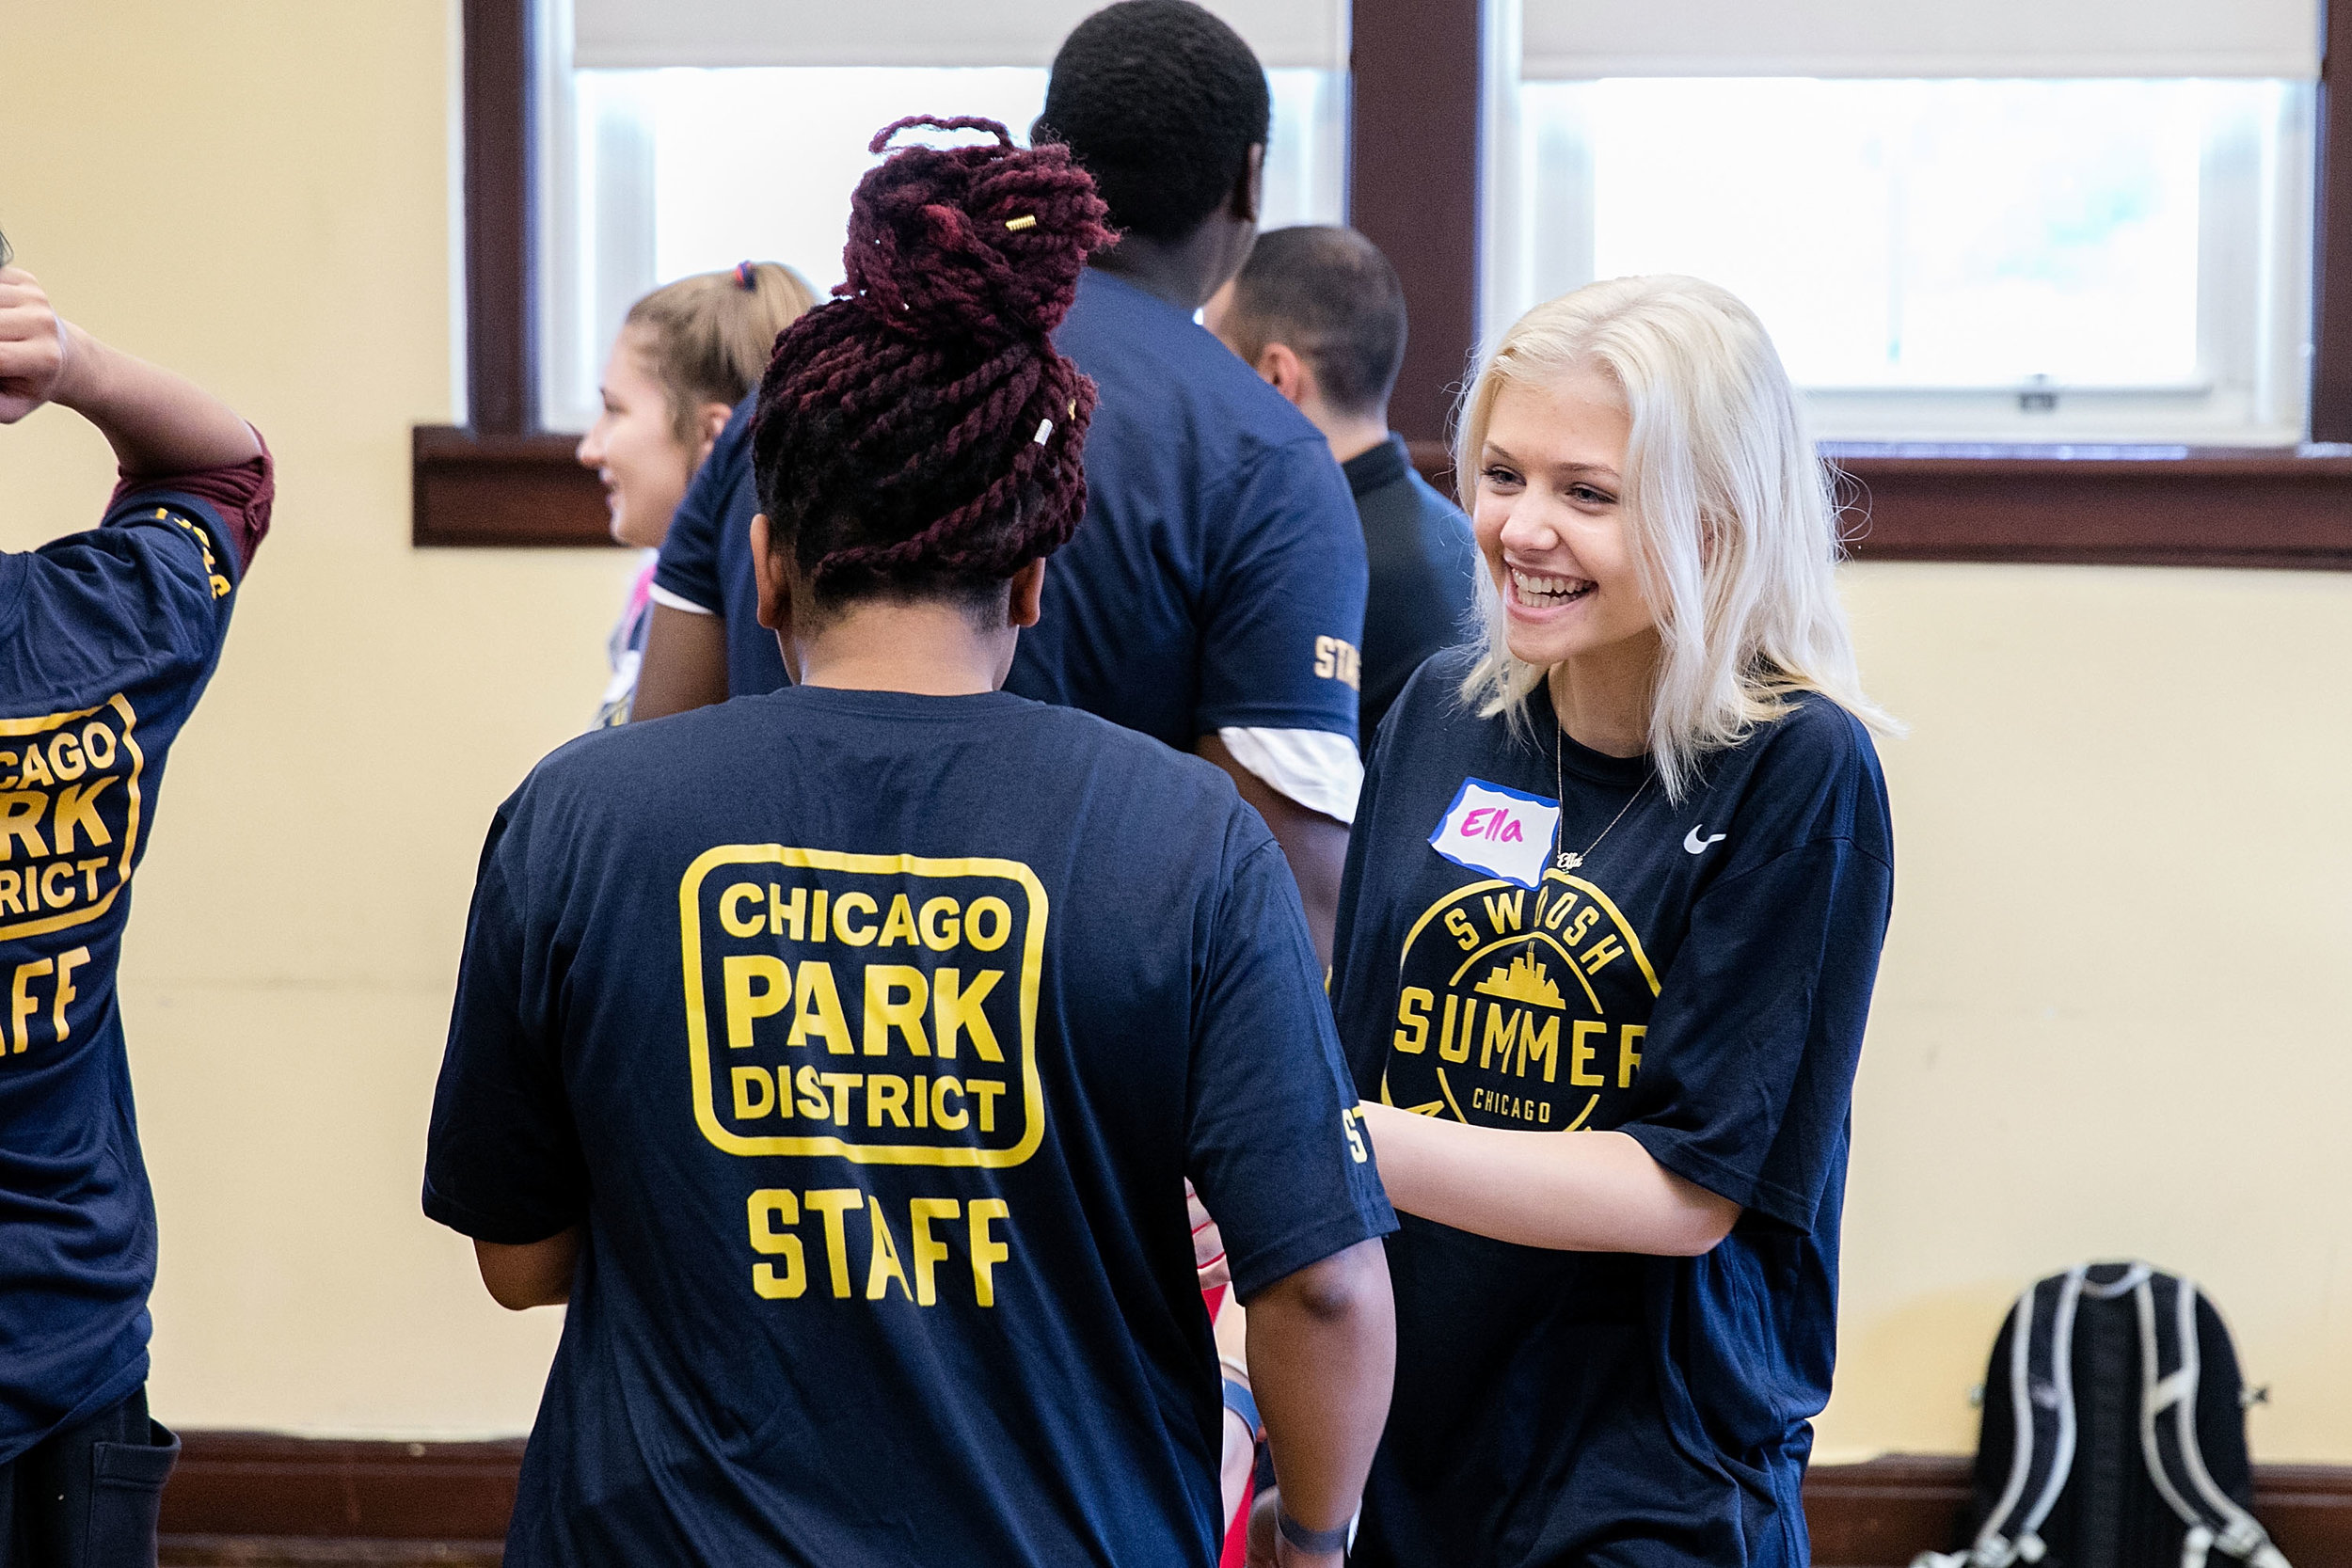 CHICAGO, IL - JUNE 28:  Up2Us Sports Trains Chicago Parks Staff in Youth Development on June 28, 2016 in Chicago, Illinois.  (Photo by Jeff Schear/Getty Images for Up2Us)